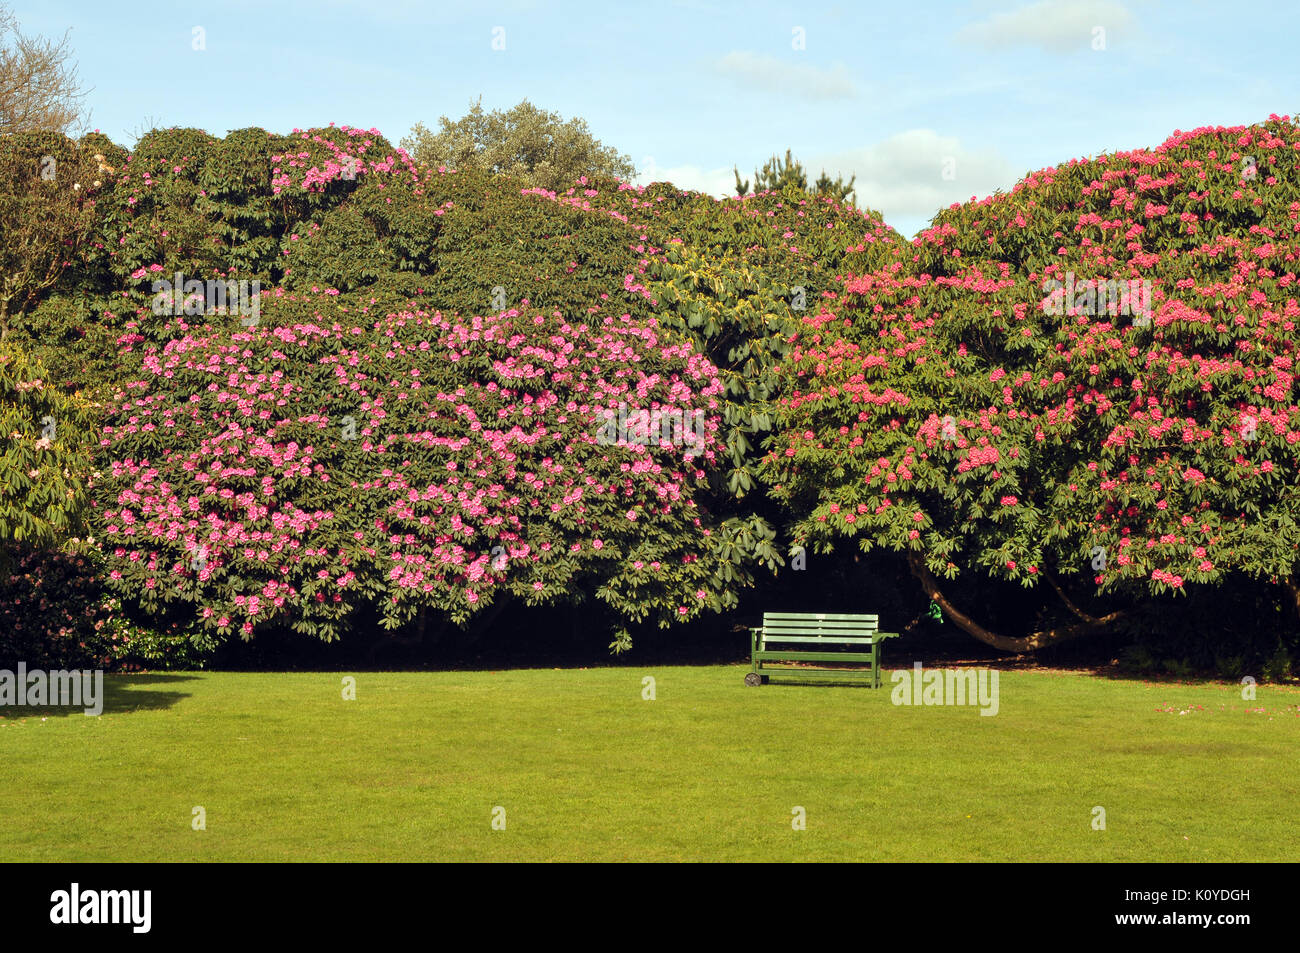 A Park or garden bench on a lawn at the lost gardens of heligan in Cornwall somewhere to sit and take a break or a rest in the shade near trees bushes - Stock Image